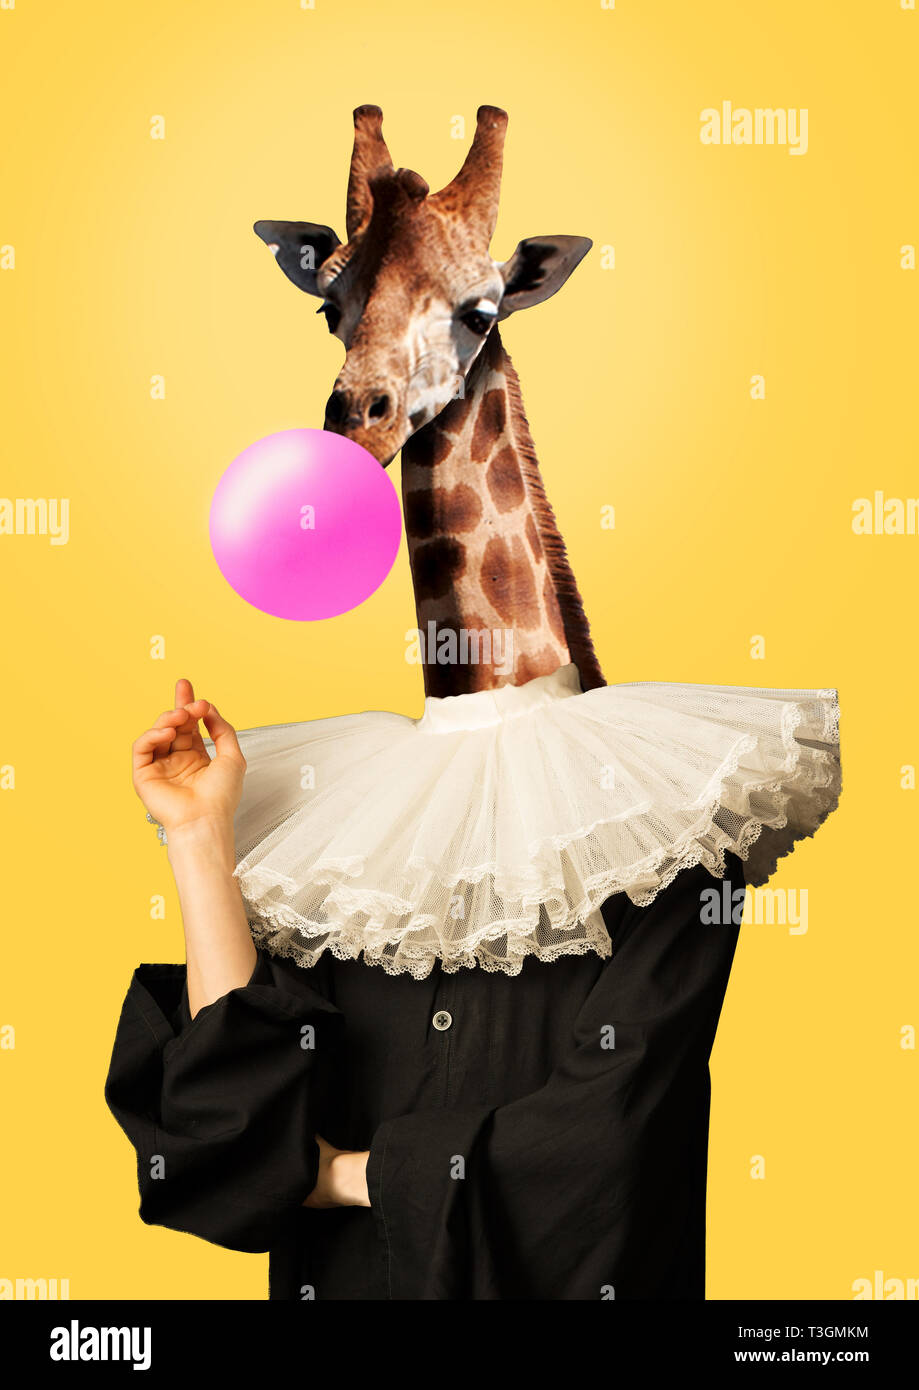 b08e40c5354 Female body in vintage or renaissance black clothes with giraffe head